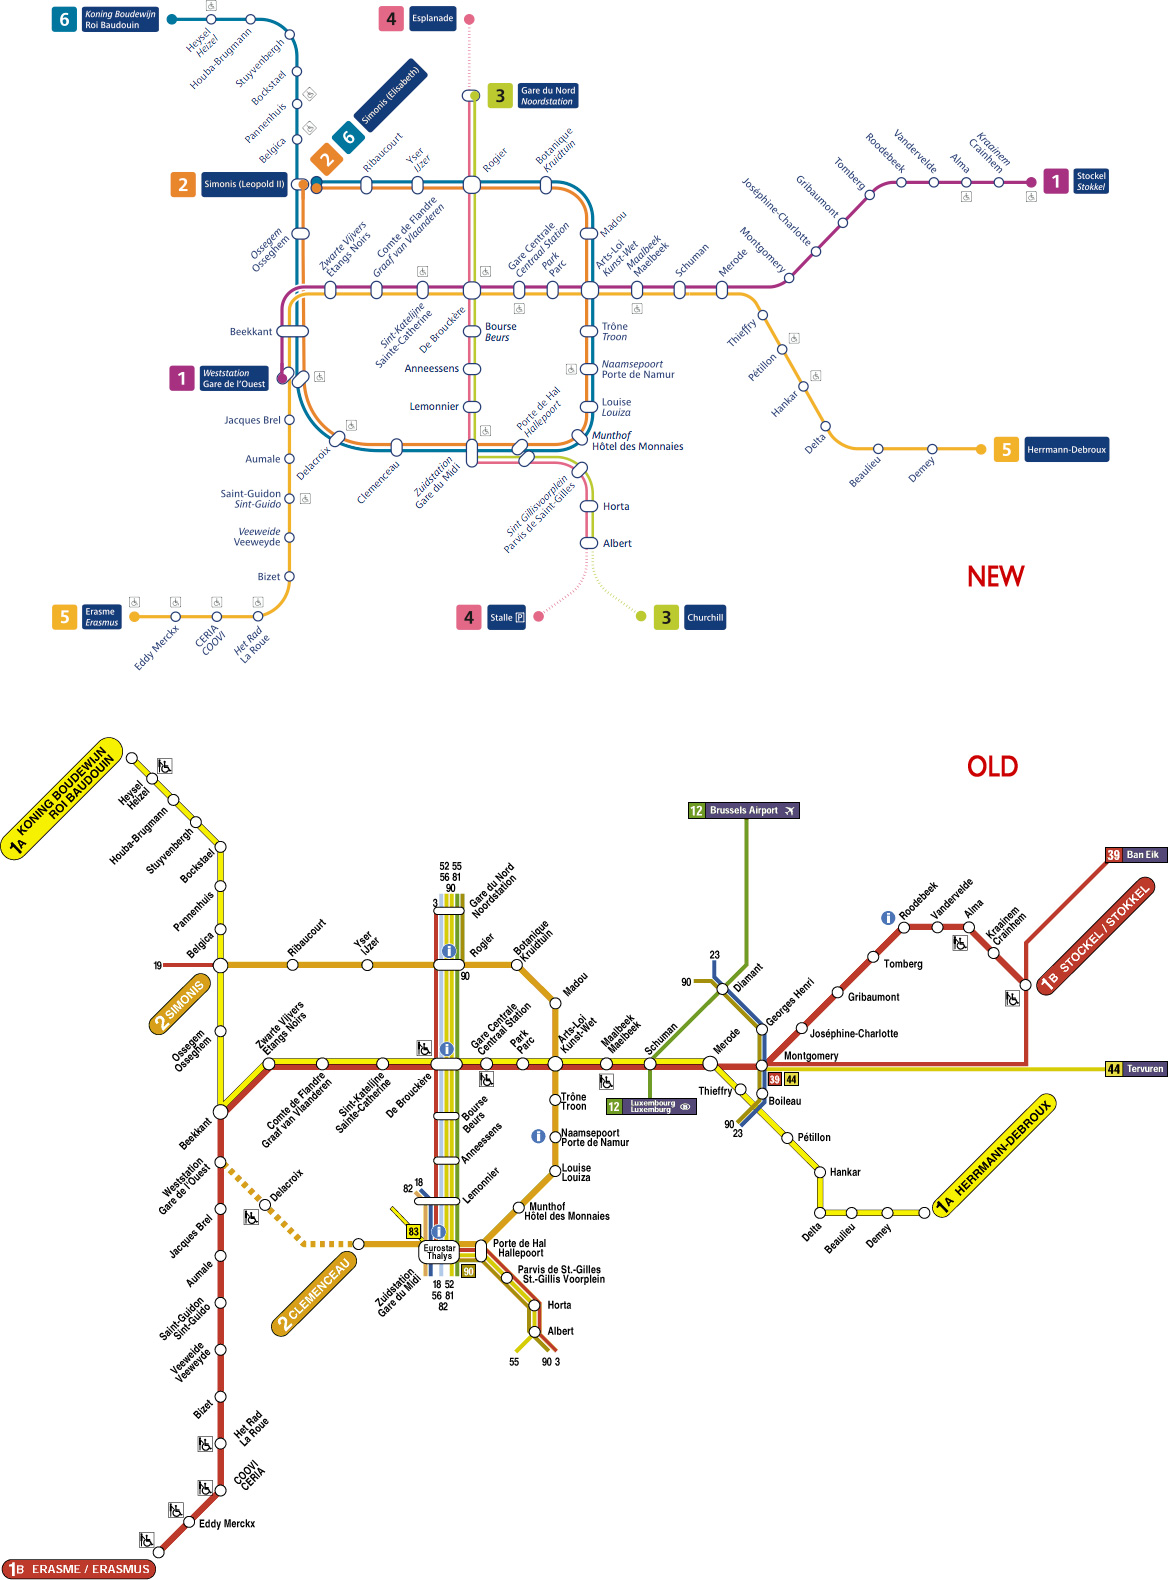 Introducing the very real Kafka Metro in Brussels Jon Worth Euroblog